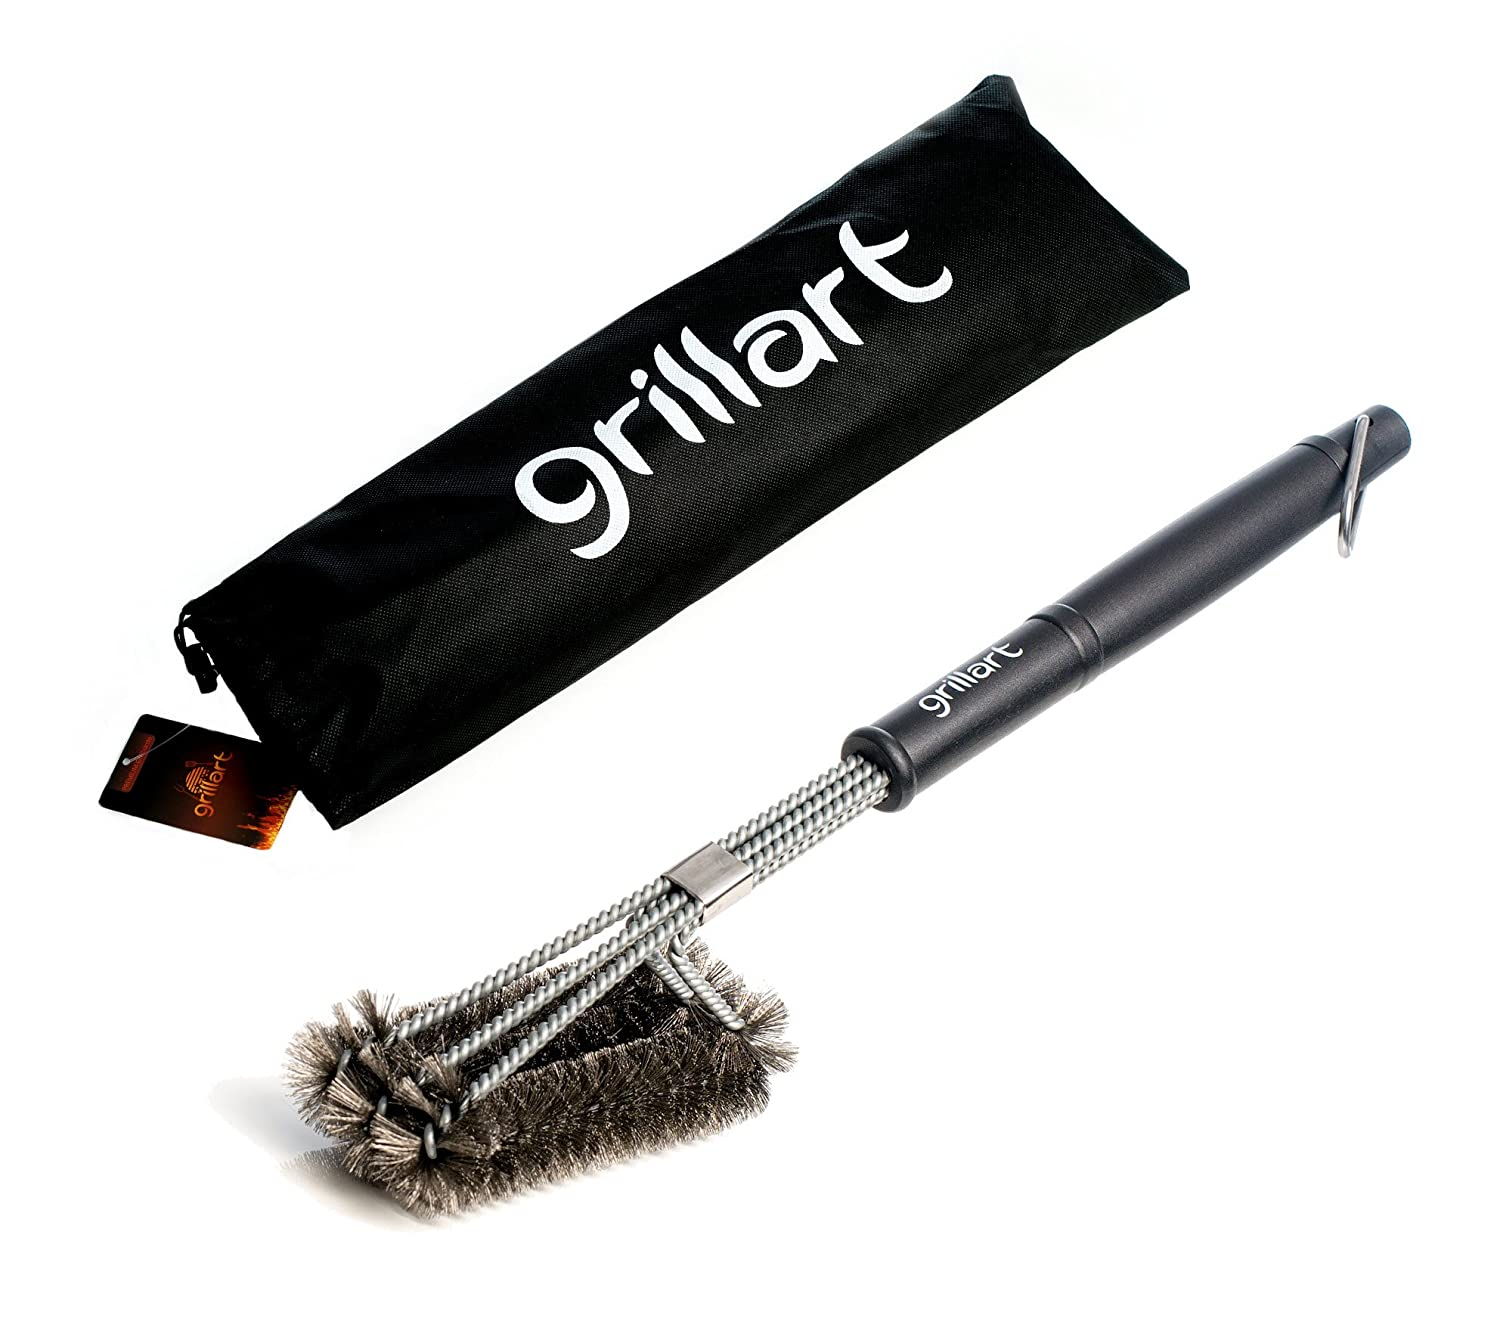 /Premium Quality with 3/Stainless Steel Brush Finish 360//° Clean/ /The Original From Grillart/ Professional BBQ Grill Brush /Cleaning/ /3/in 1 Stainless Steel/